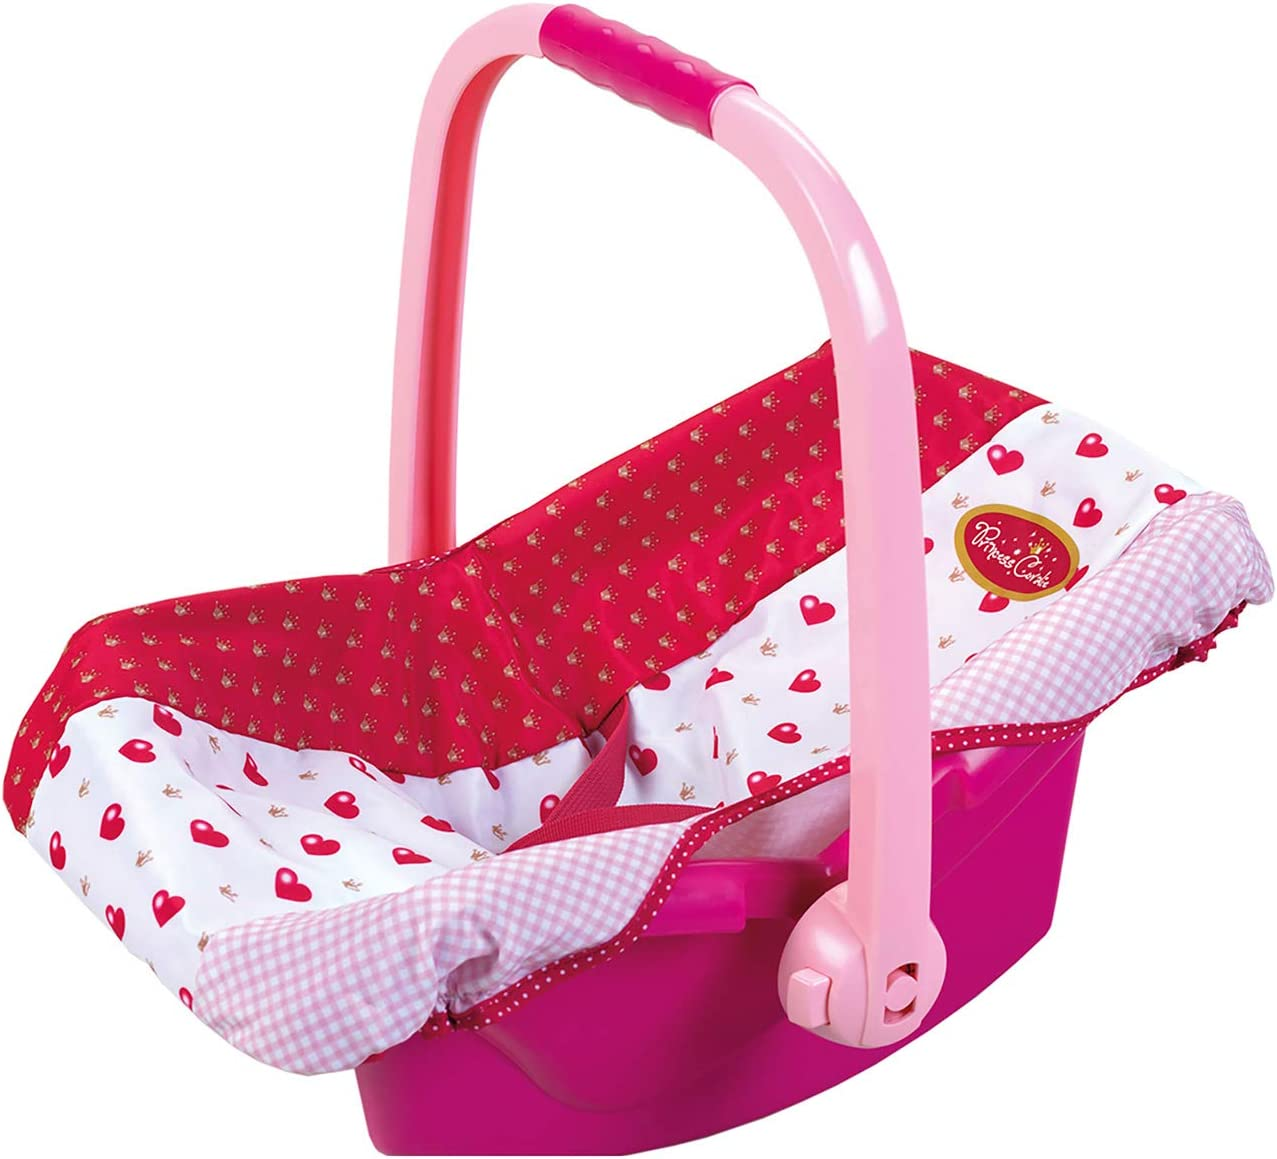 Theo Klein 1669 Princess Charlotte Mall Coralie Multi-Color Direct store Doll Toy Carrycot